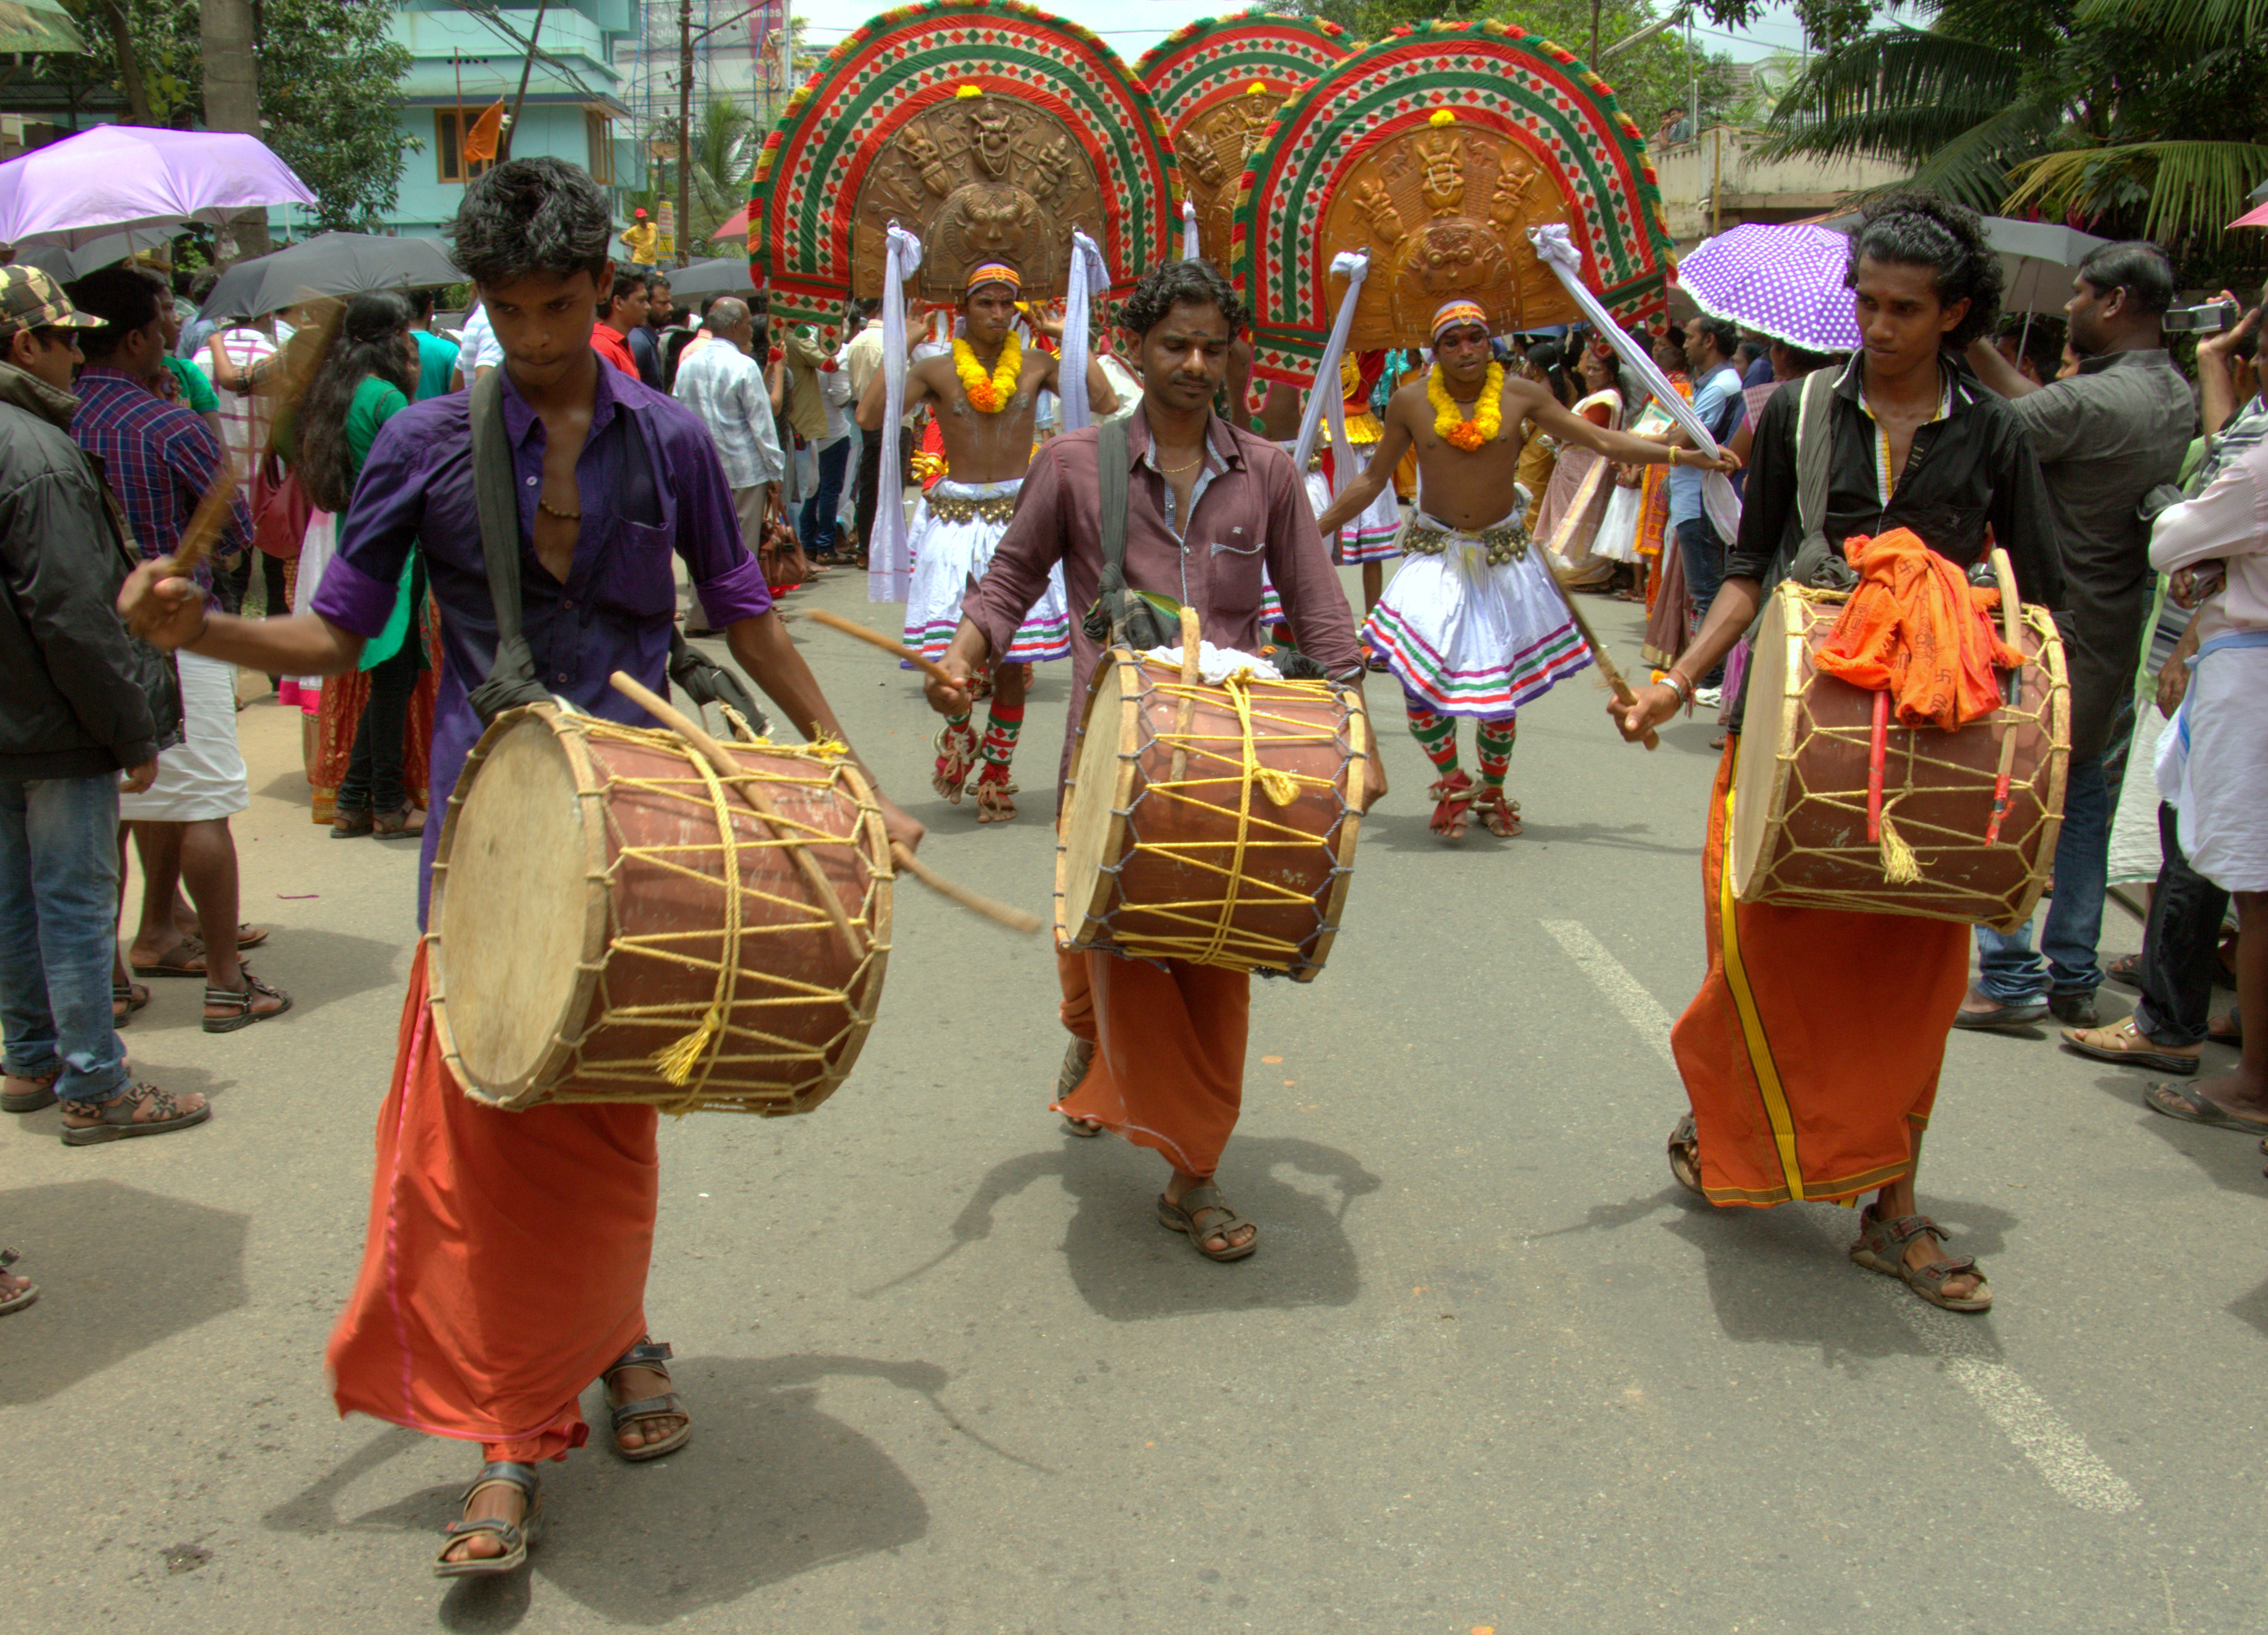 onam festival How to celebrate onam onam is a festival celebrated in the south indian state of kerala widespread celebrations go on throughout the months of august and september.